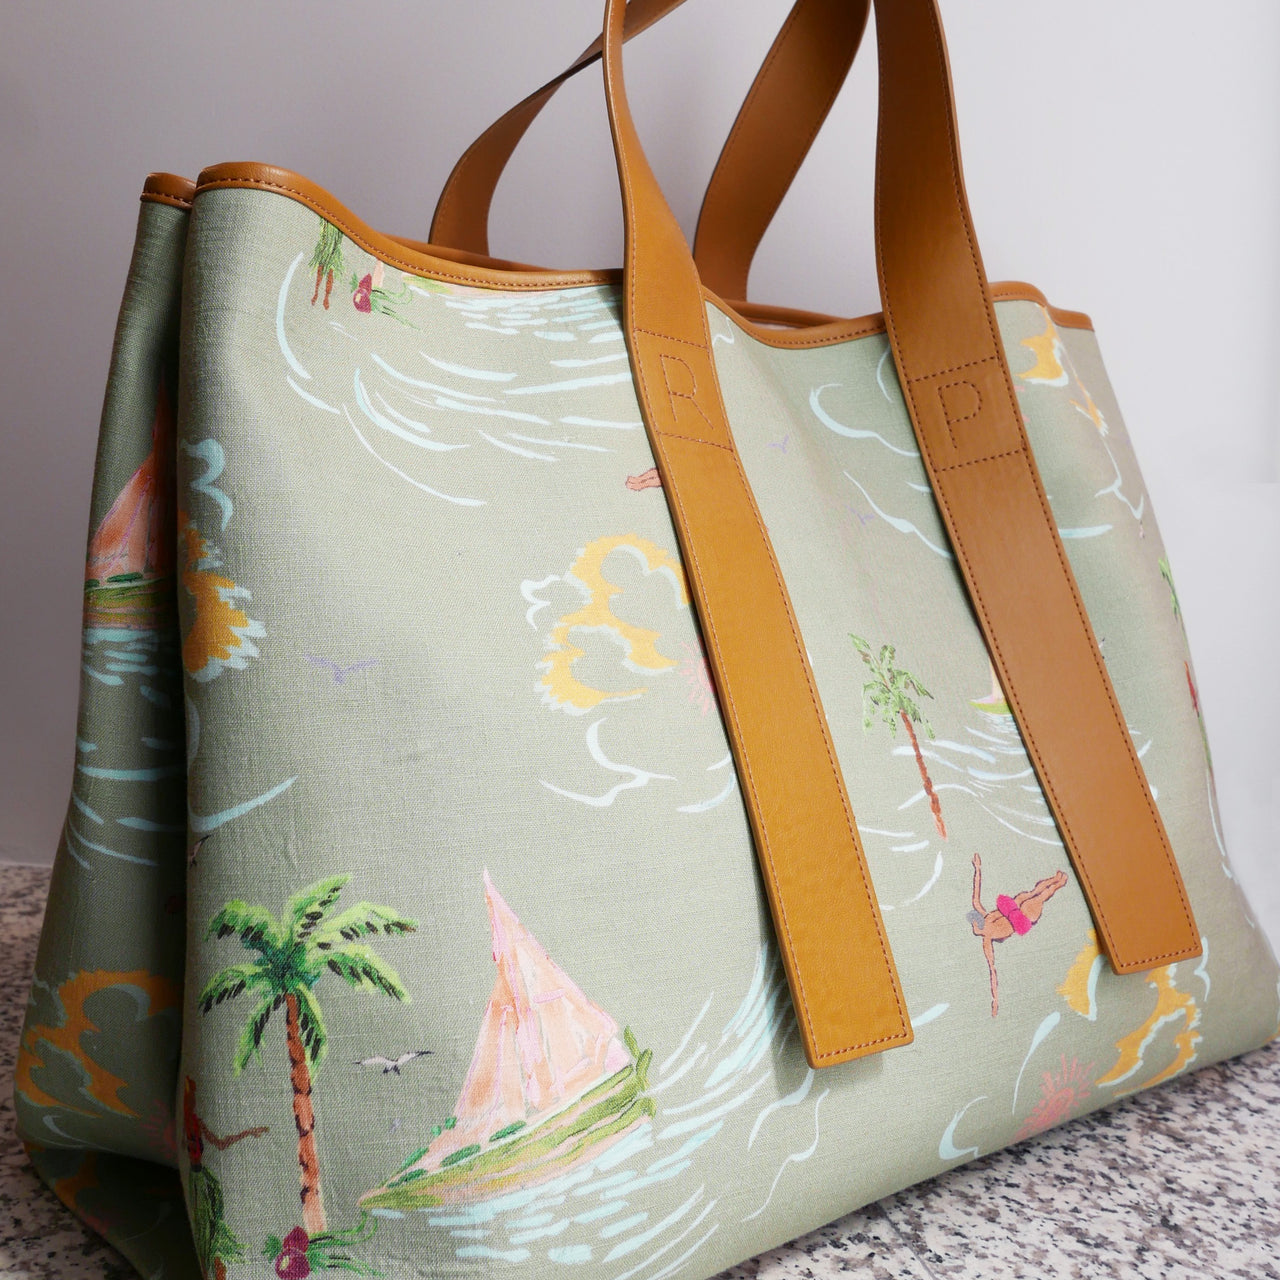 Carter Printed Canvas Tote